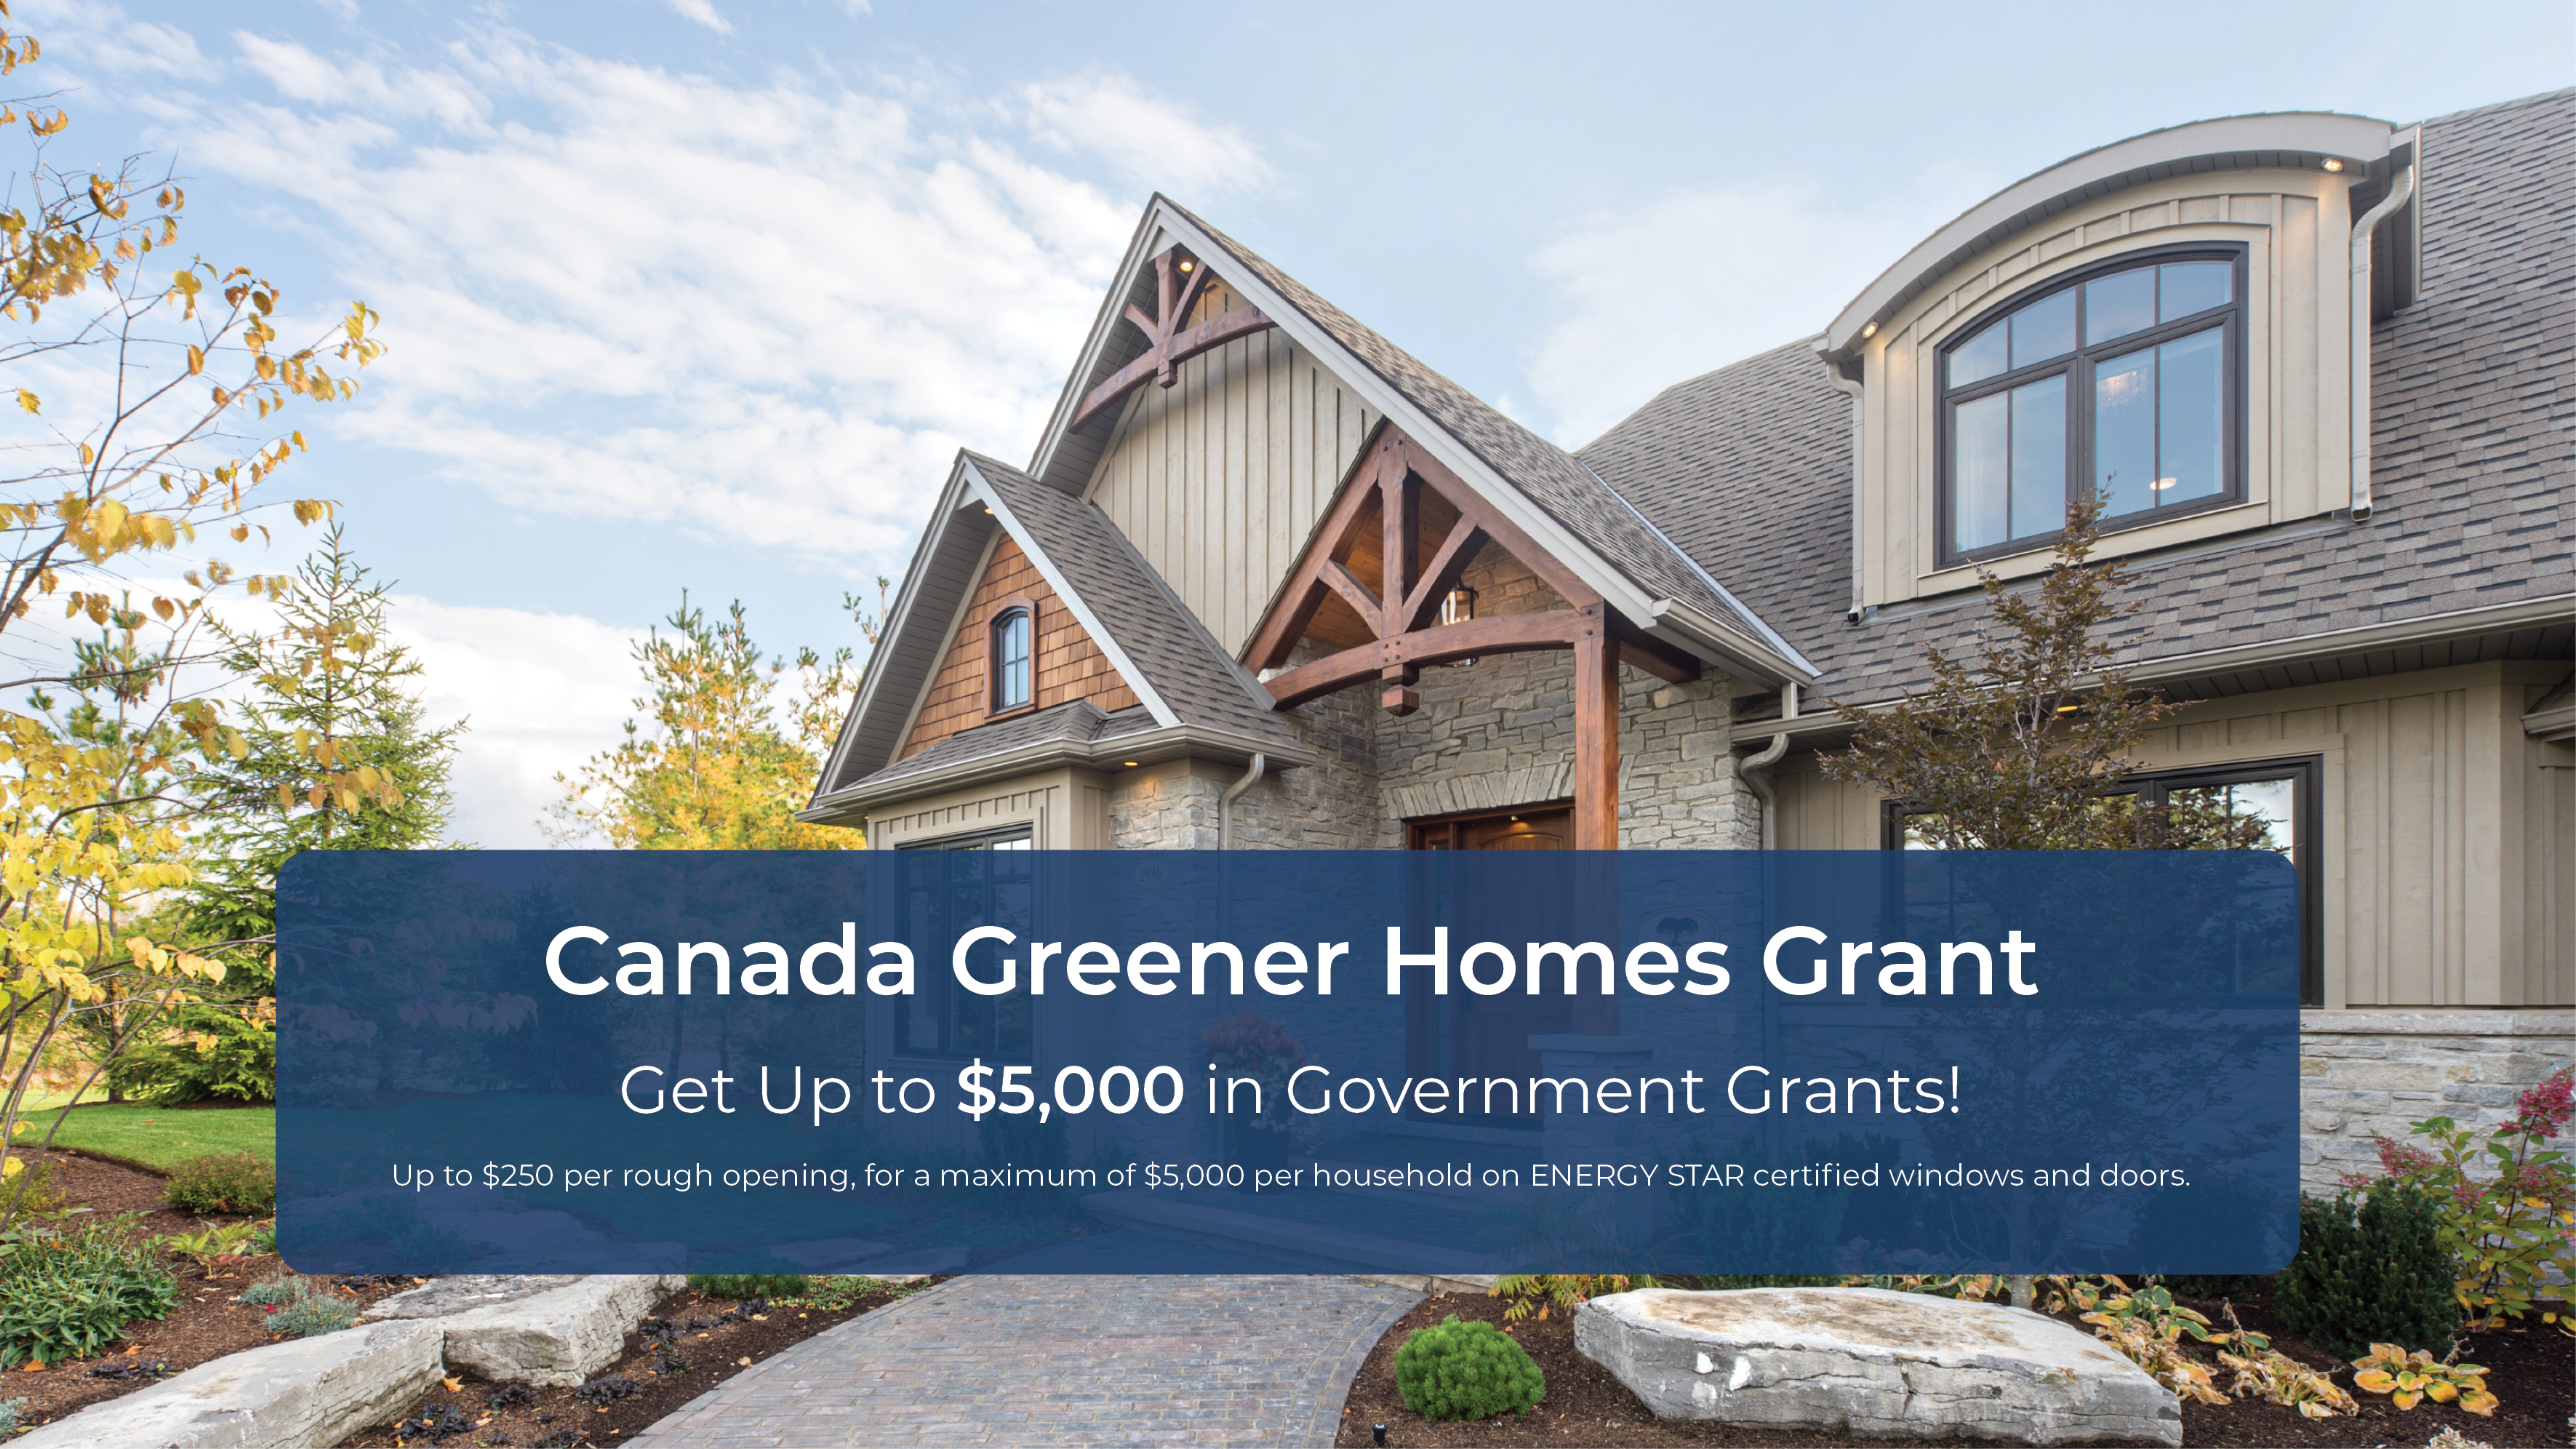 Canada Greener Homes Grant promotional information